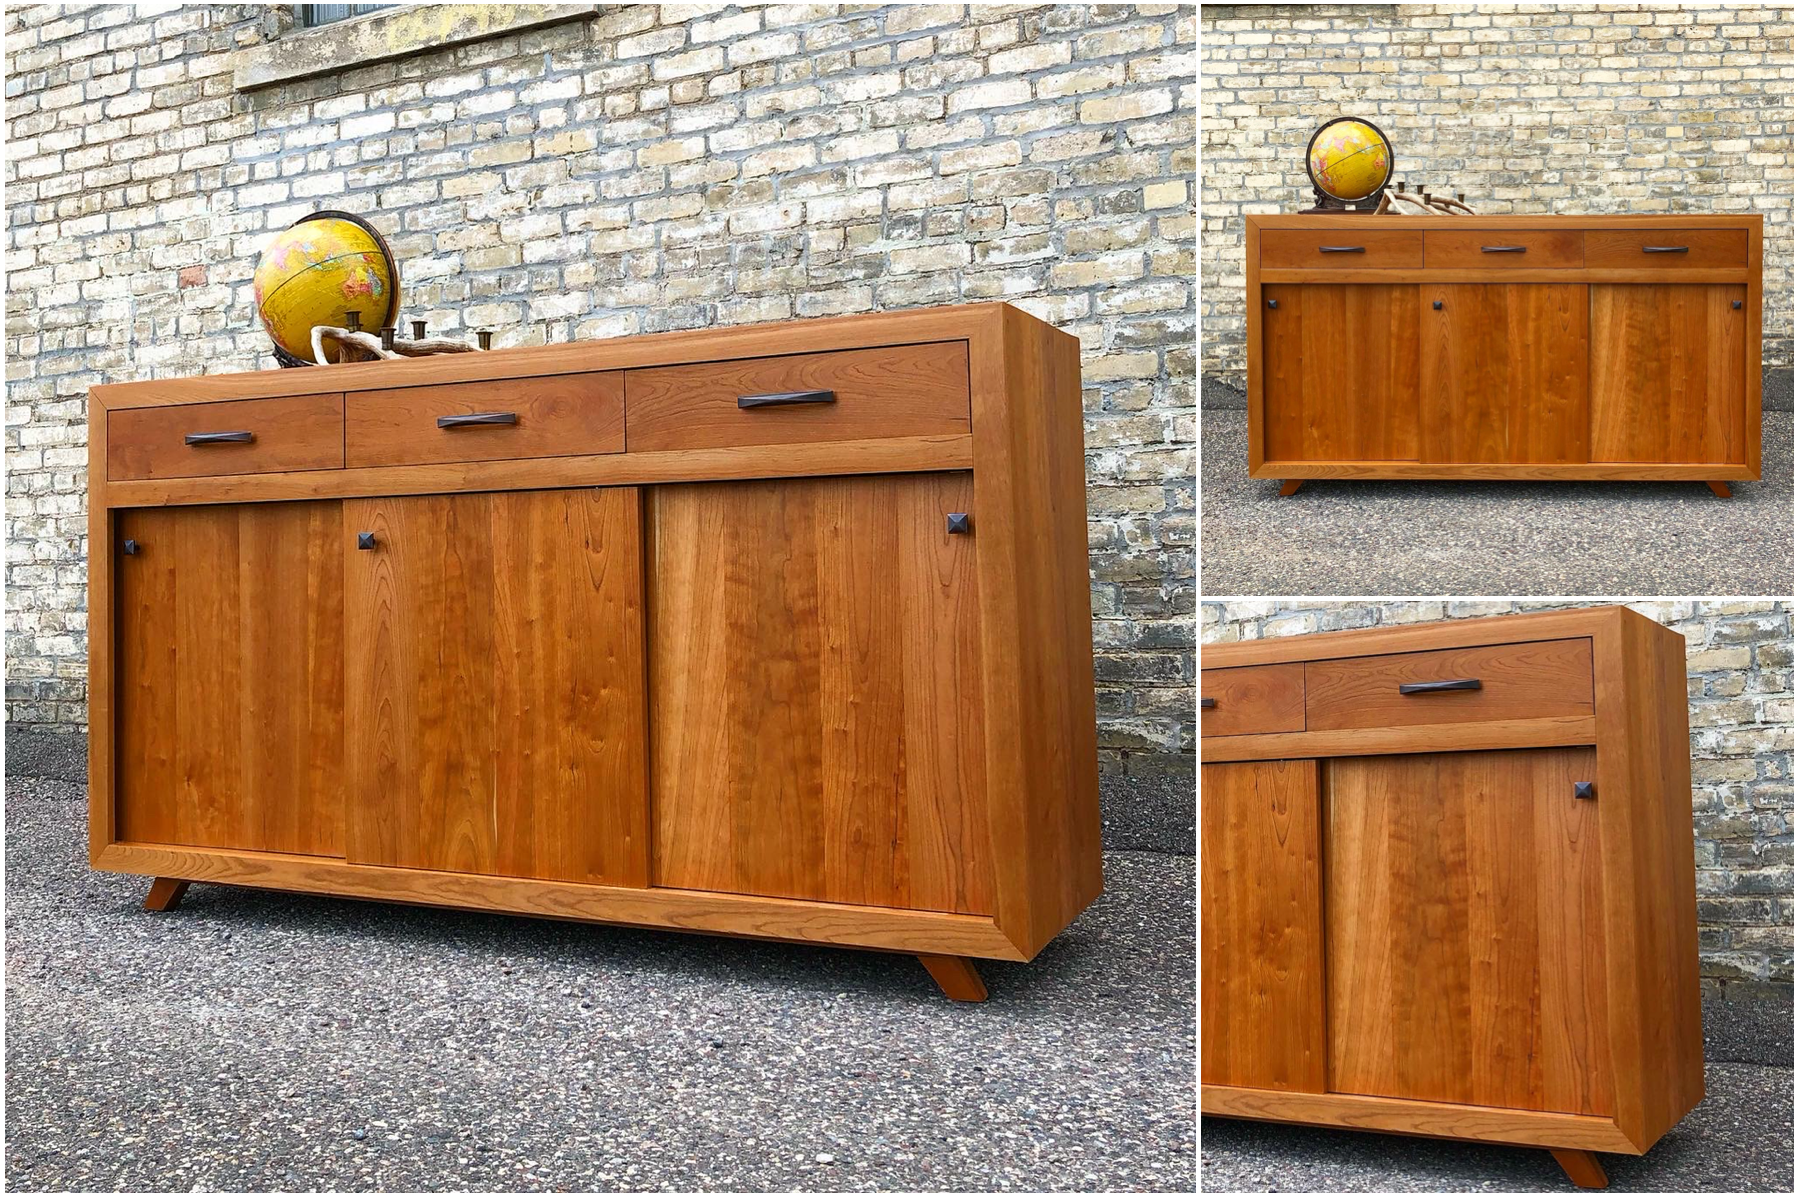 NNK_sideboard_cherry_collage